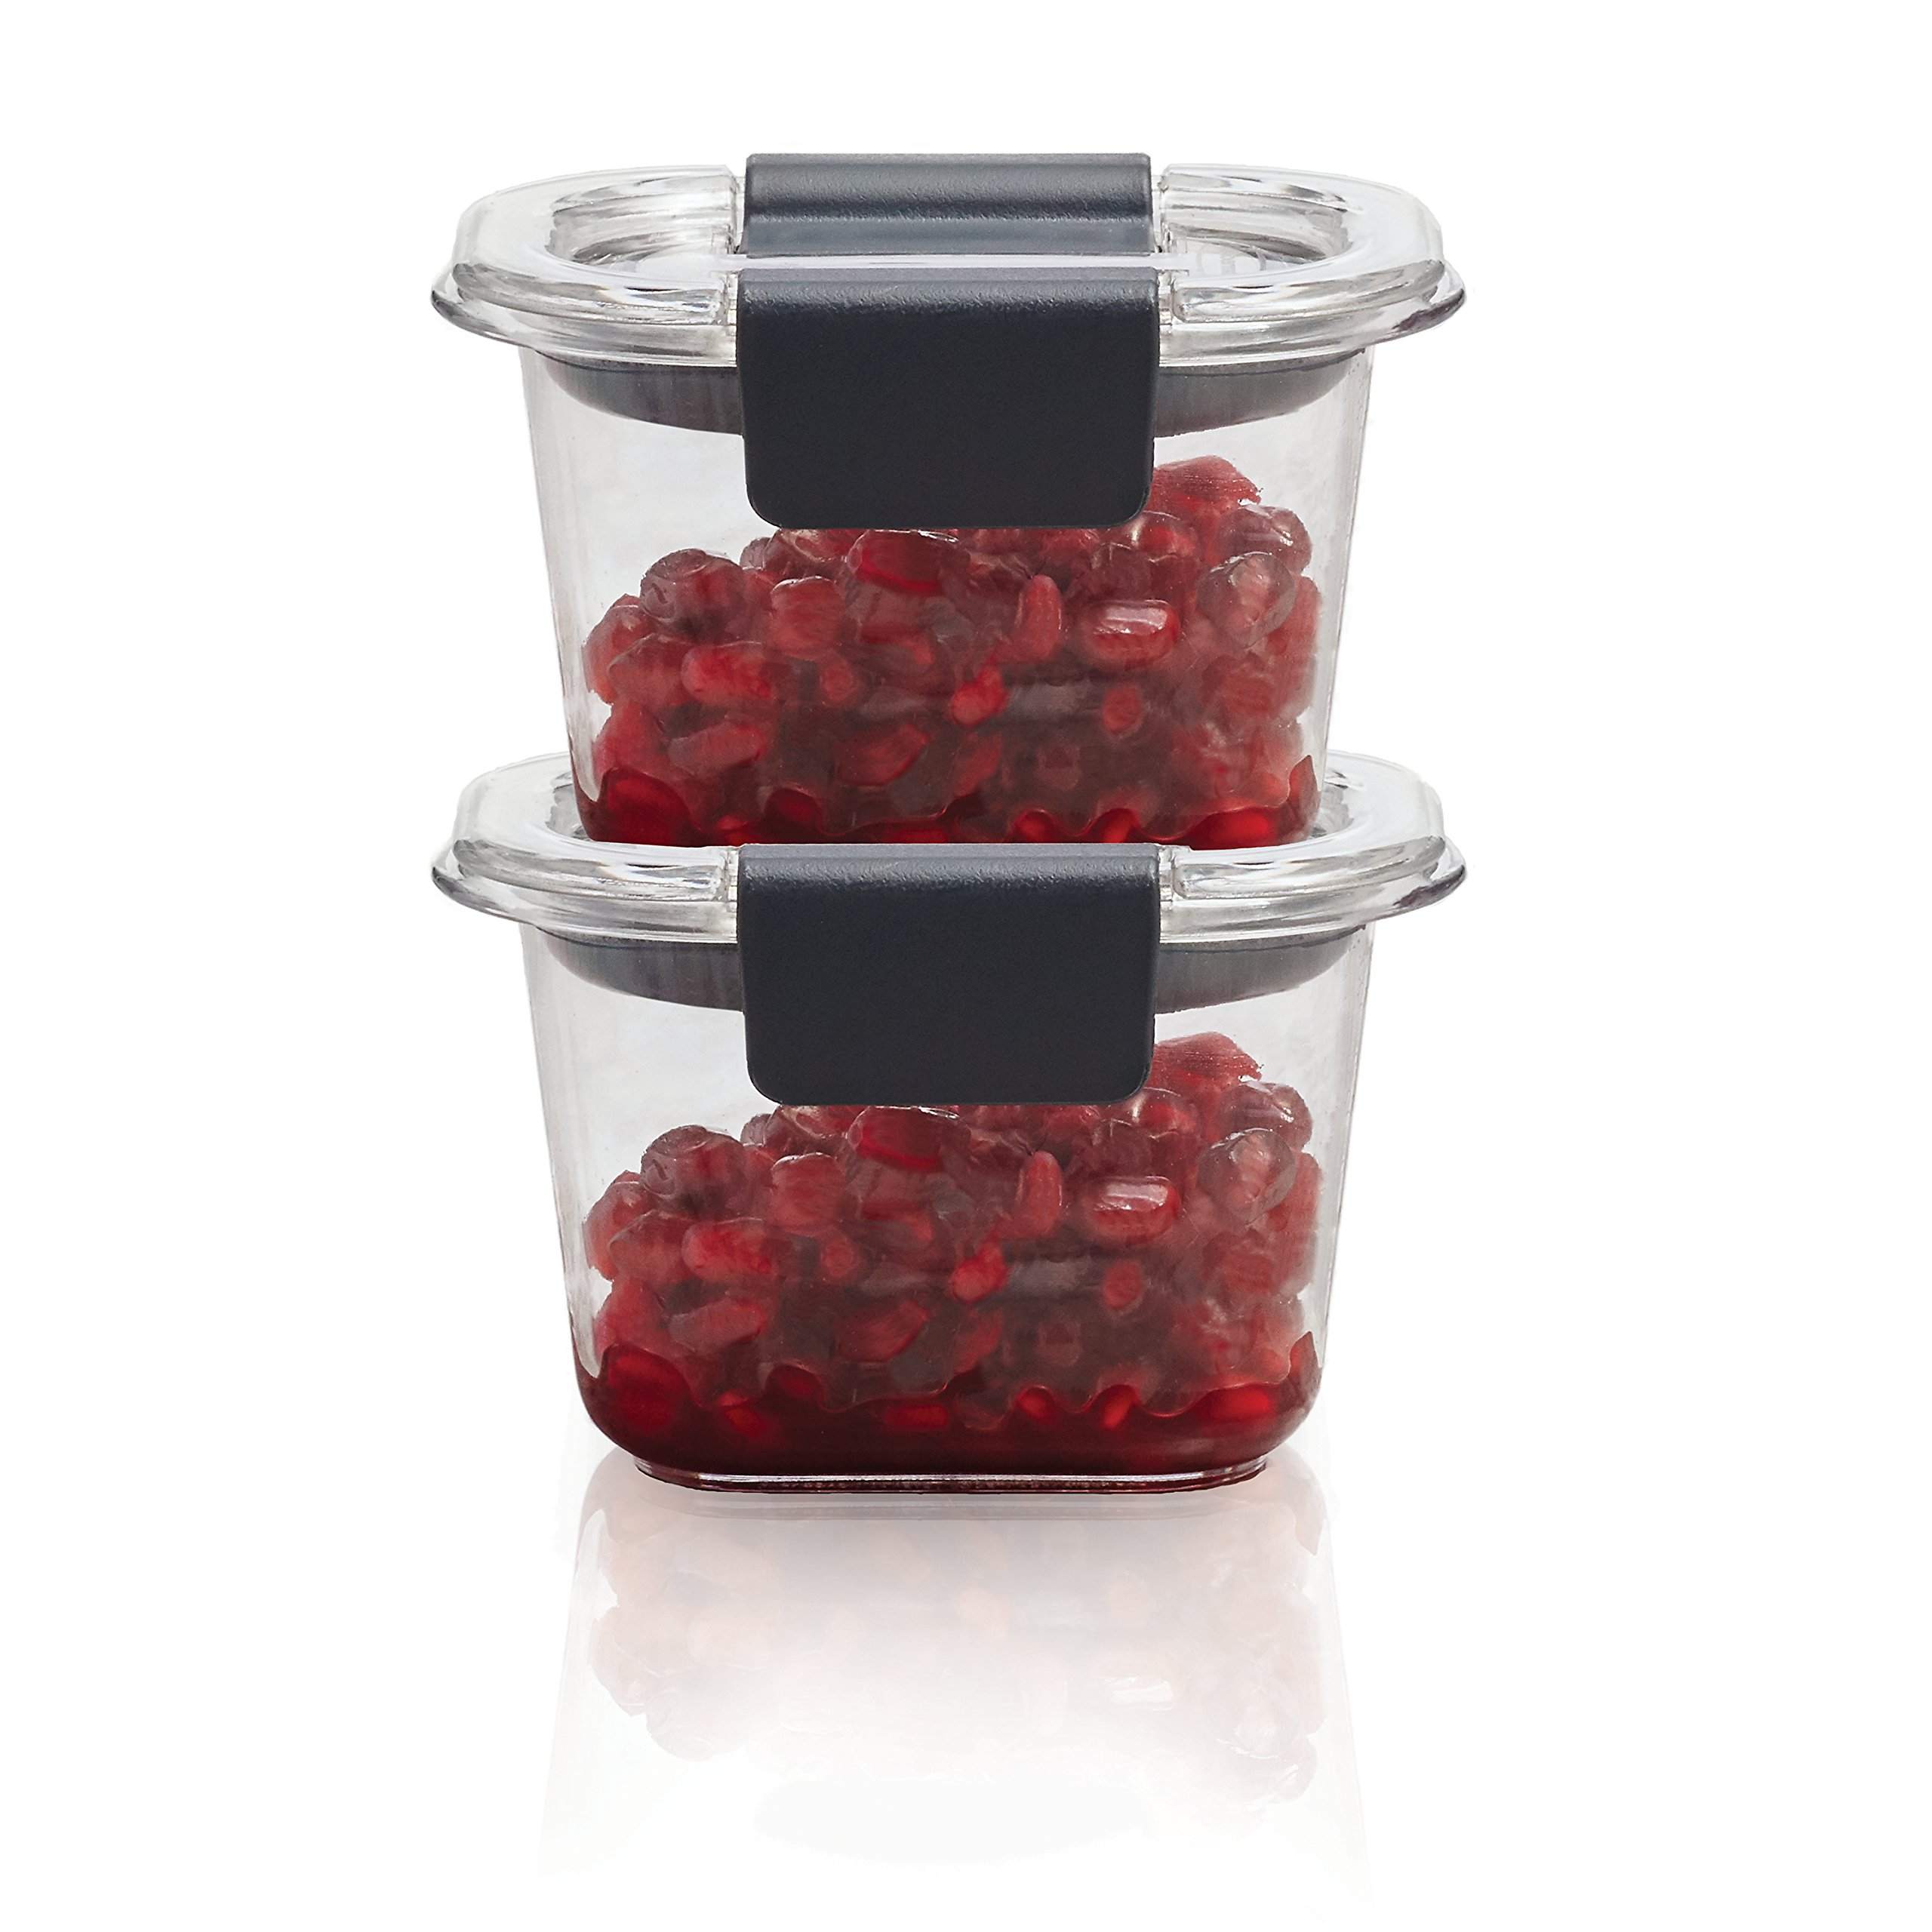 Rubbermaid Brilliance Food Storage Container, Mini, 0.5 Cup, Clear, 2 Pack 1991154